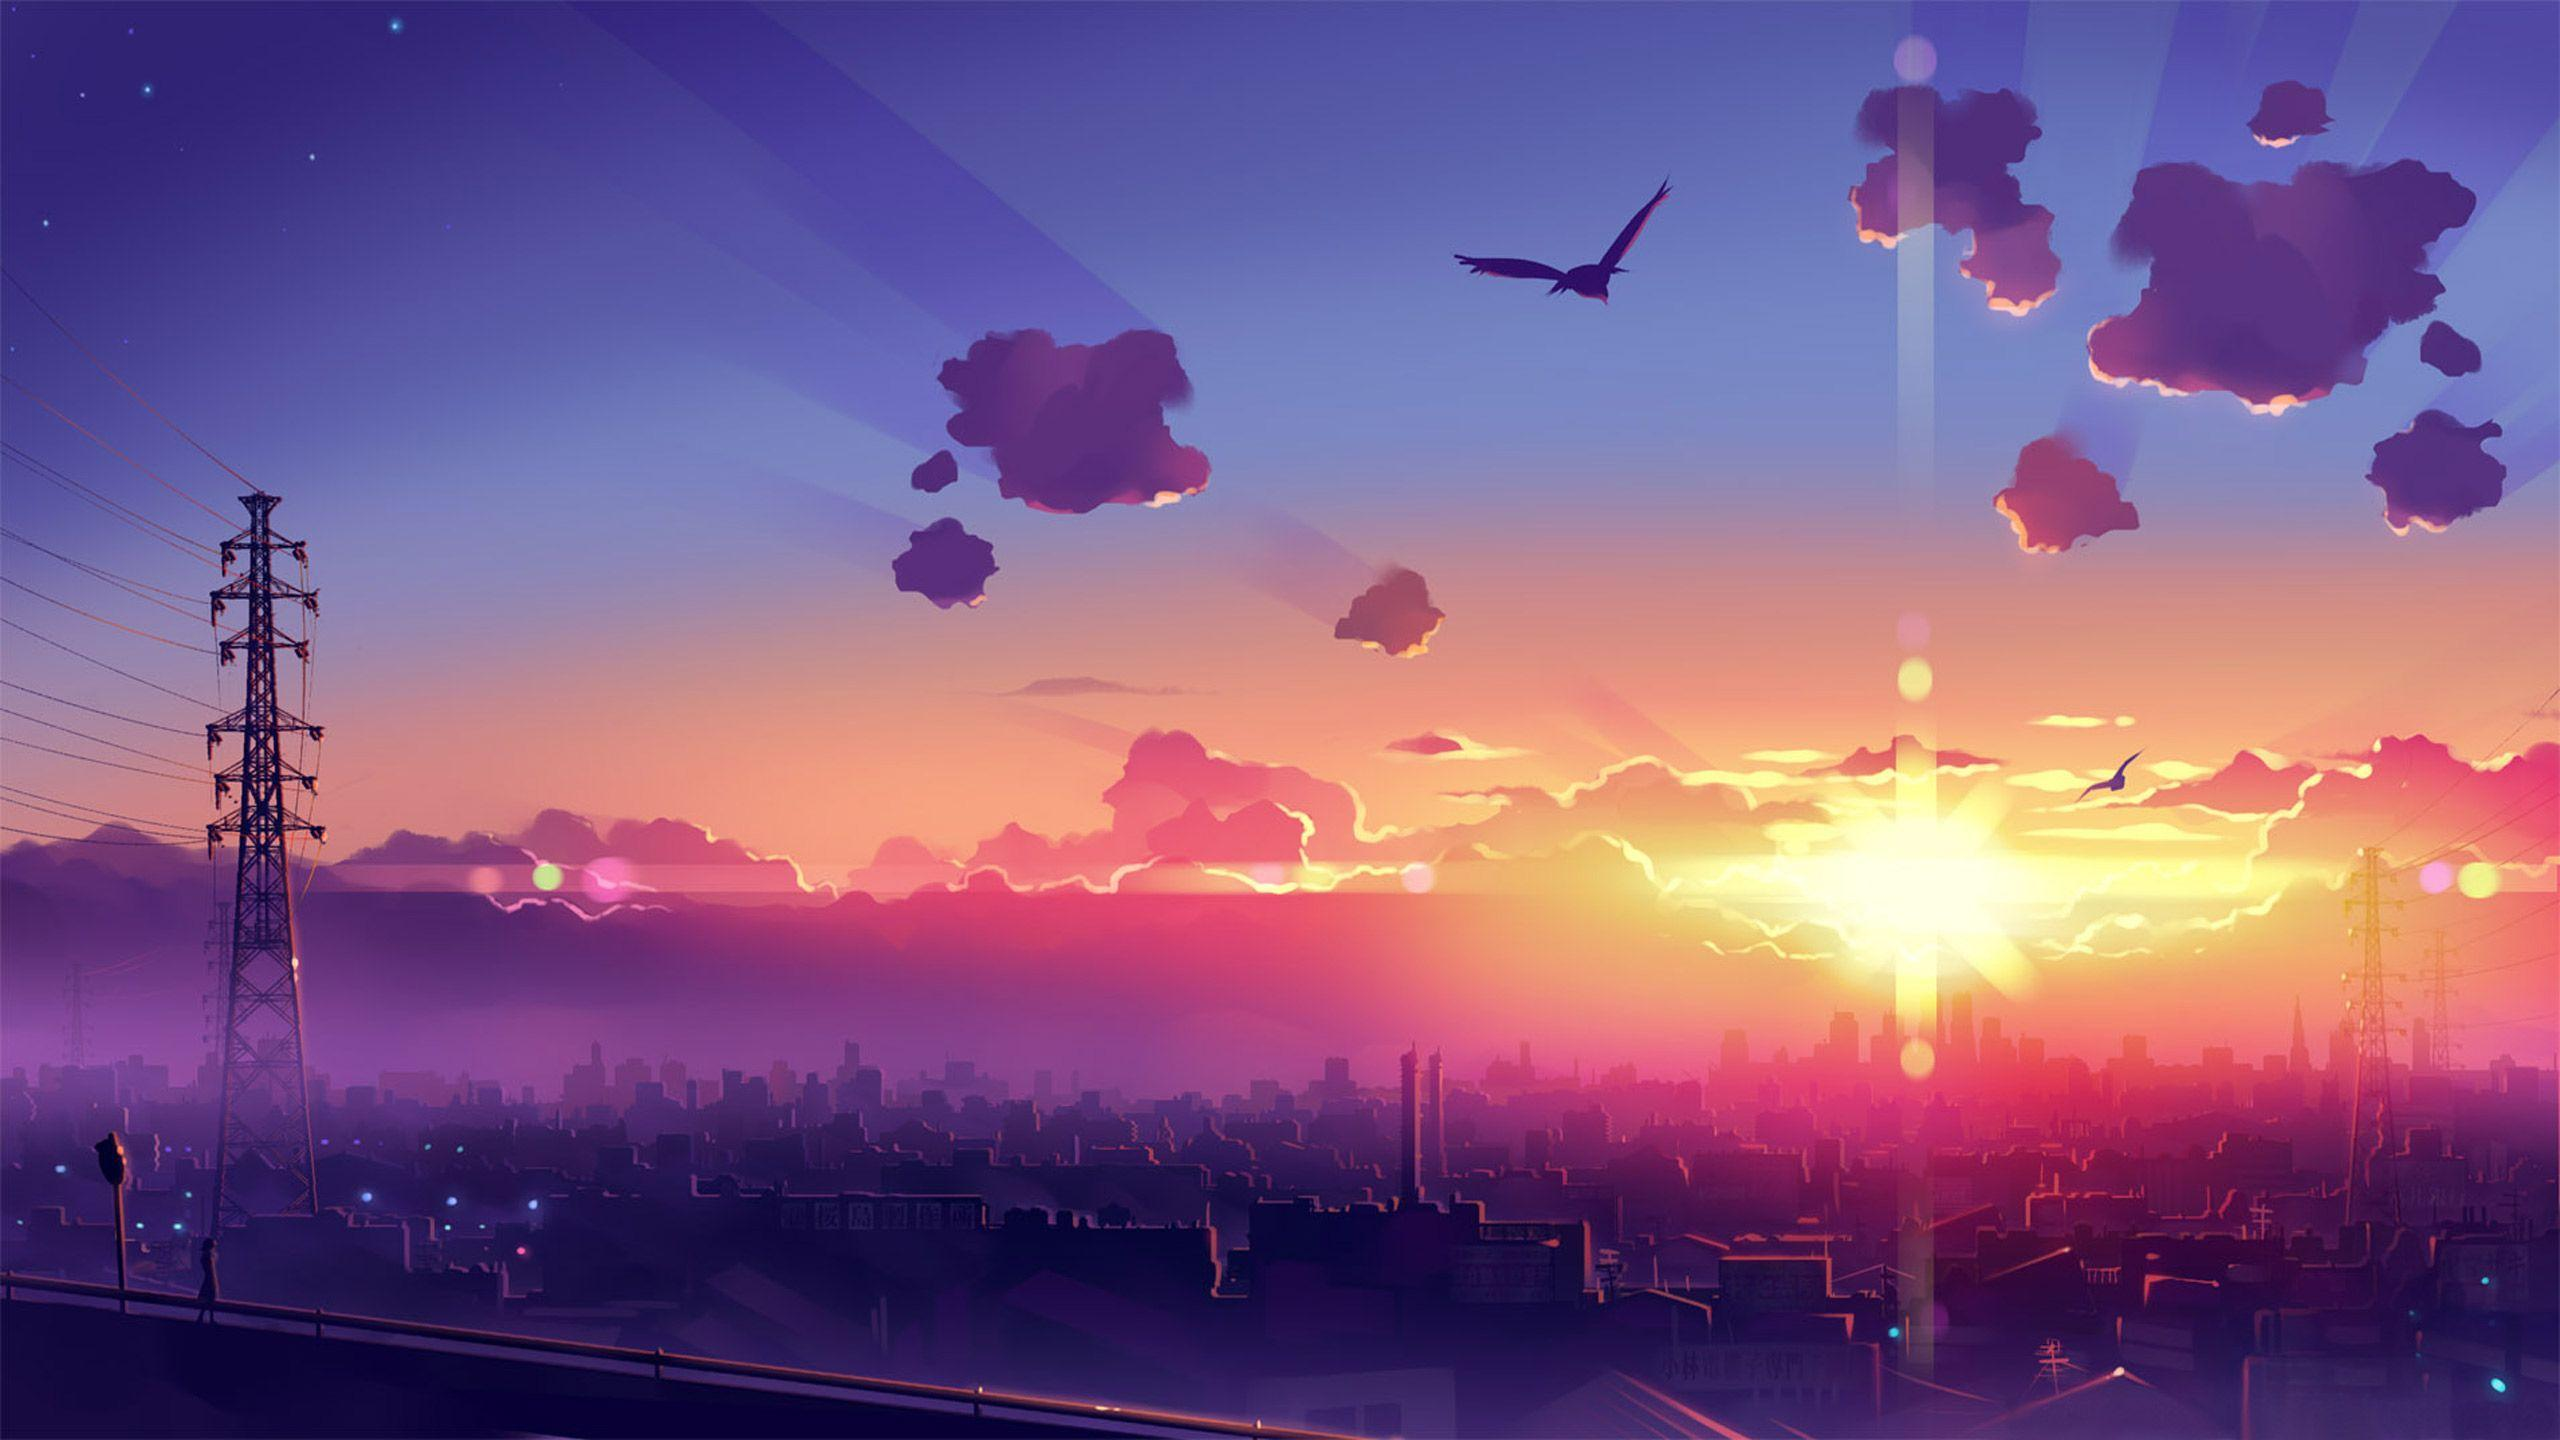 Cool Anime Purple Sunset Wallpapers Wallpaper Cave